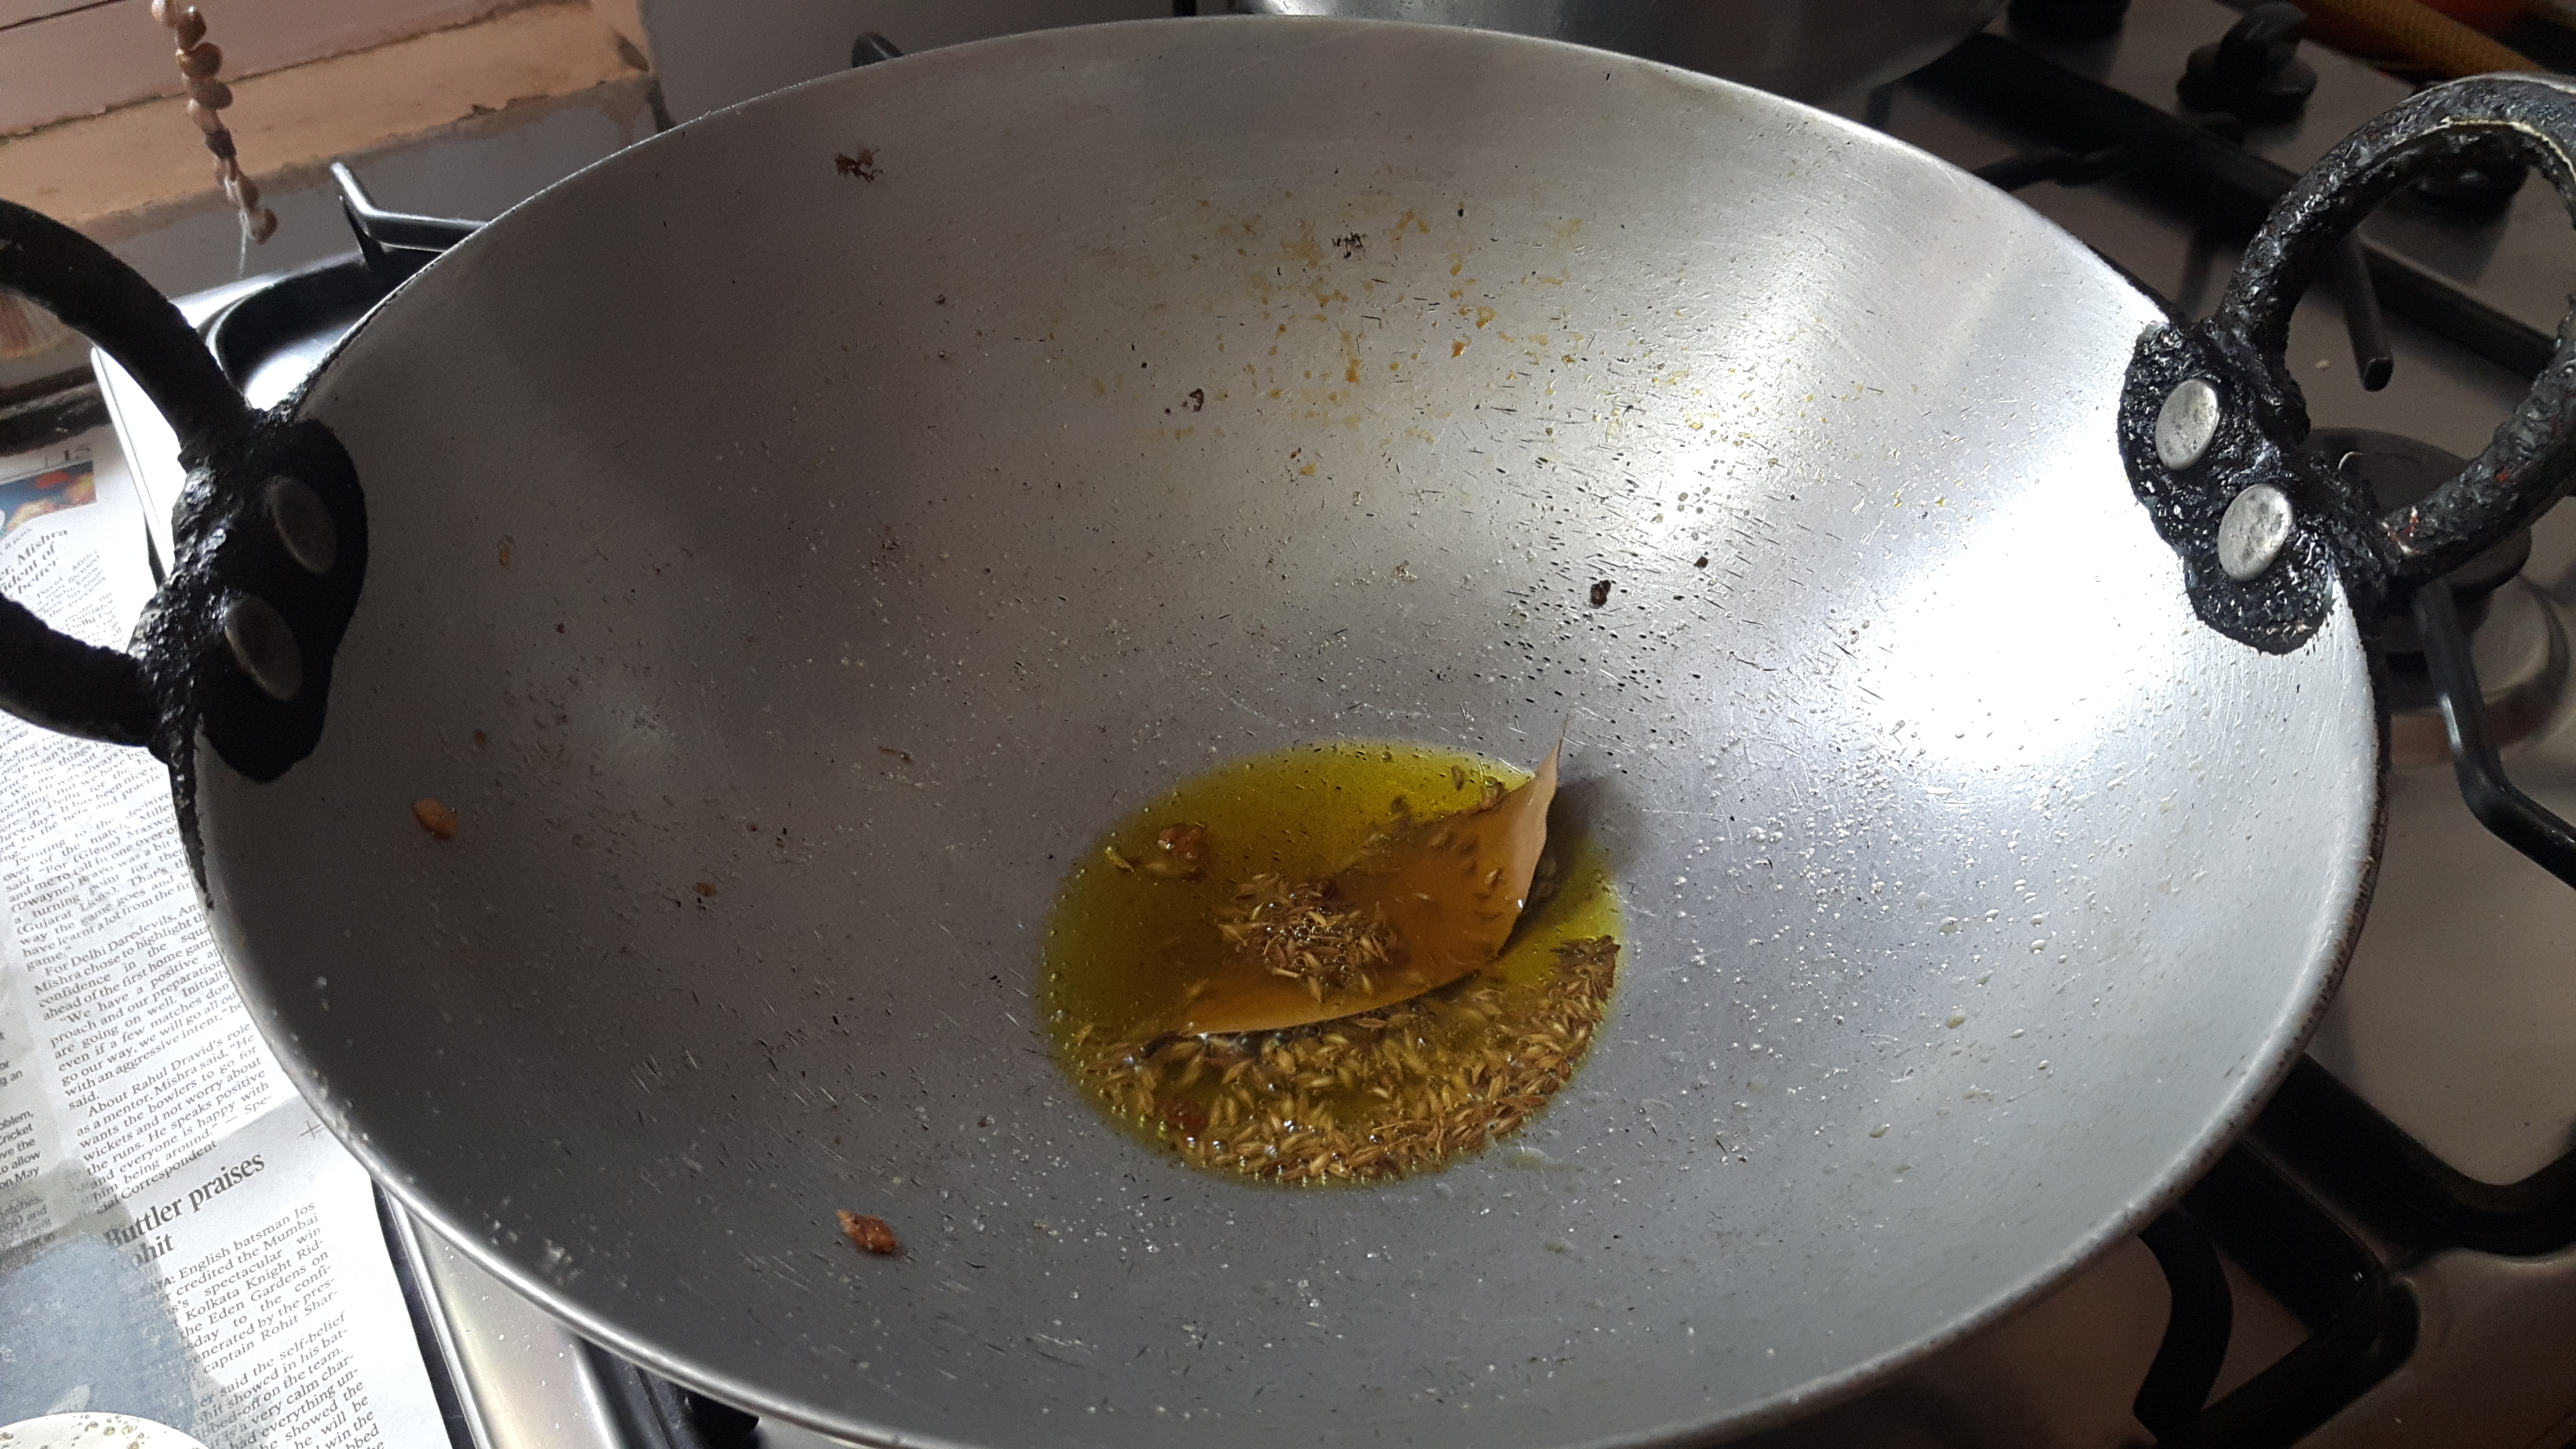 put 2 whole chilies, cumin seeds and bay leaf